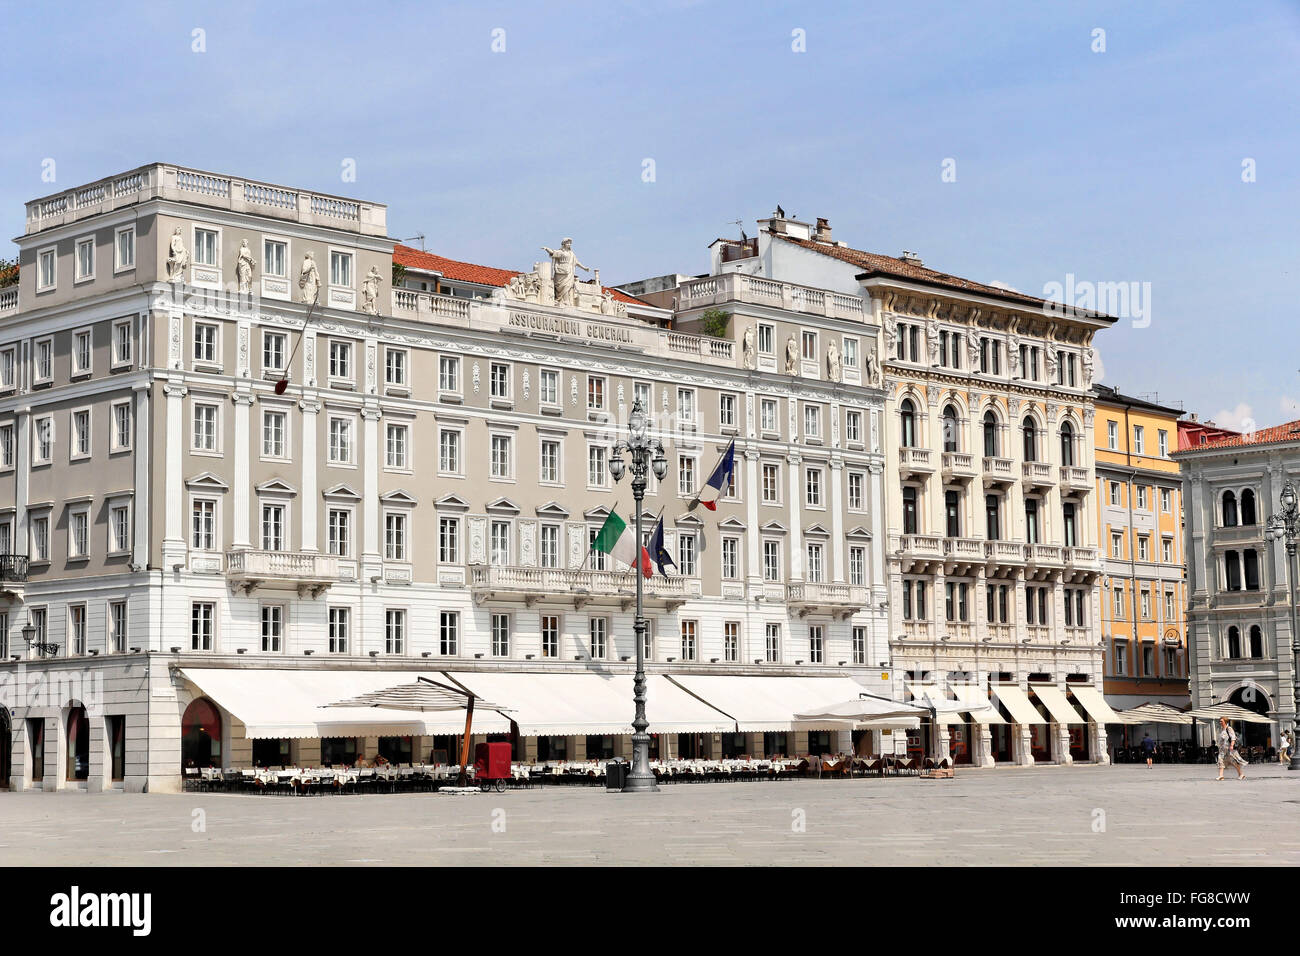 geography / travel, Italy, Friuli, Trieste, Cafe degli Specchi, Piazza Unita, Additional-Rights-Clearance-Info-Not - Stock Image